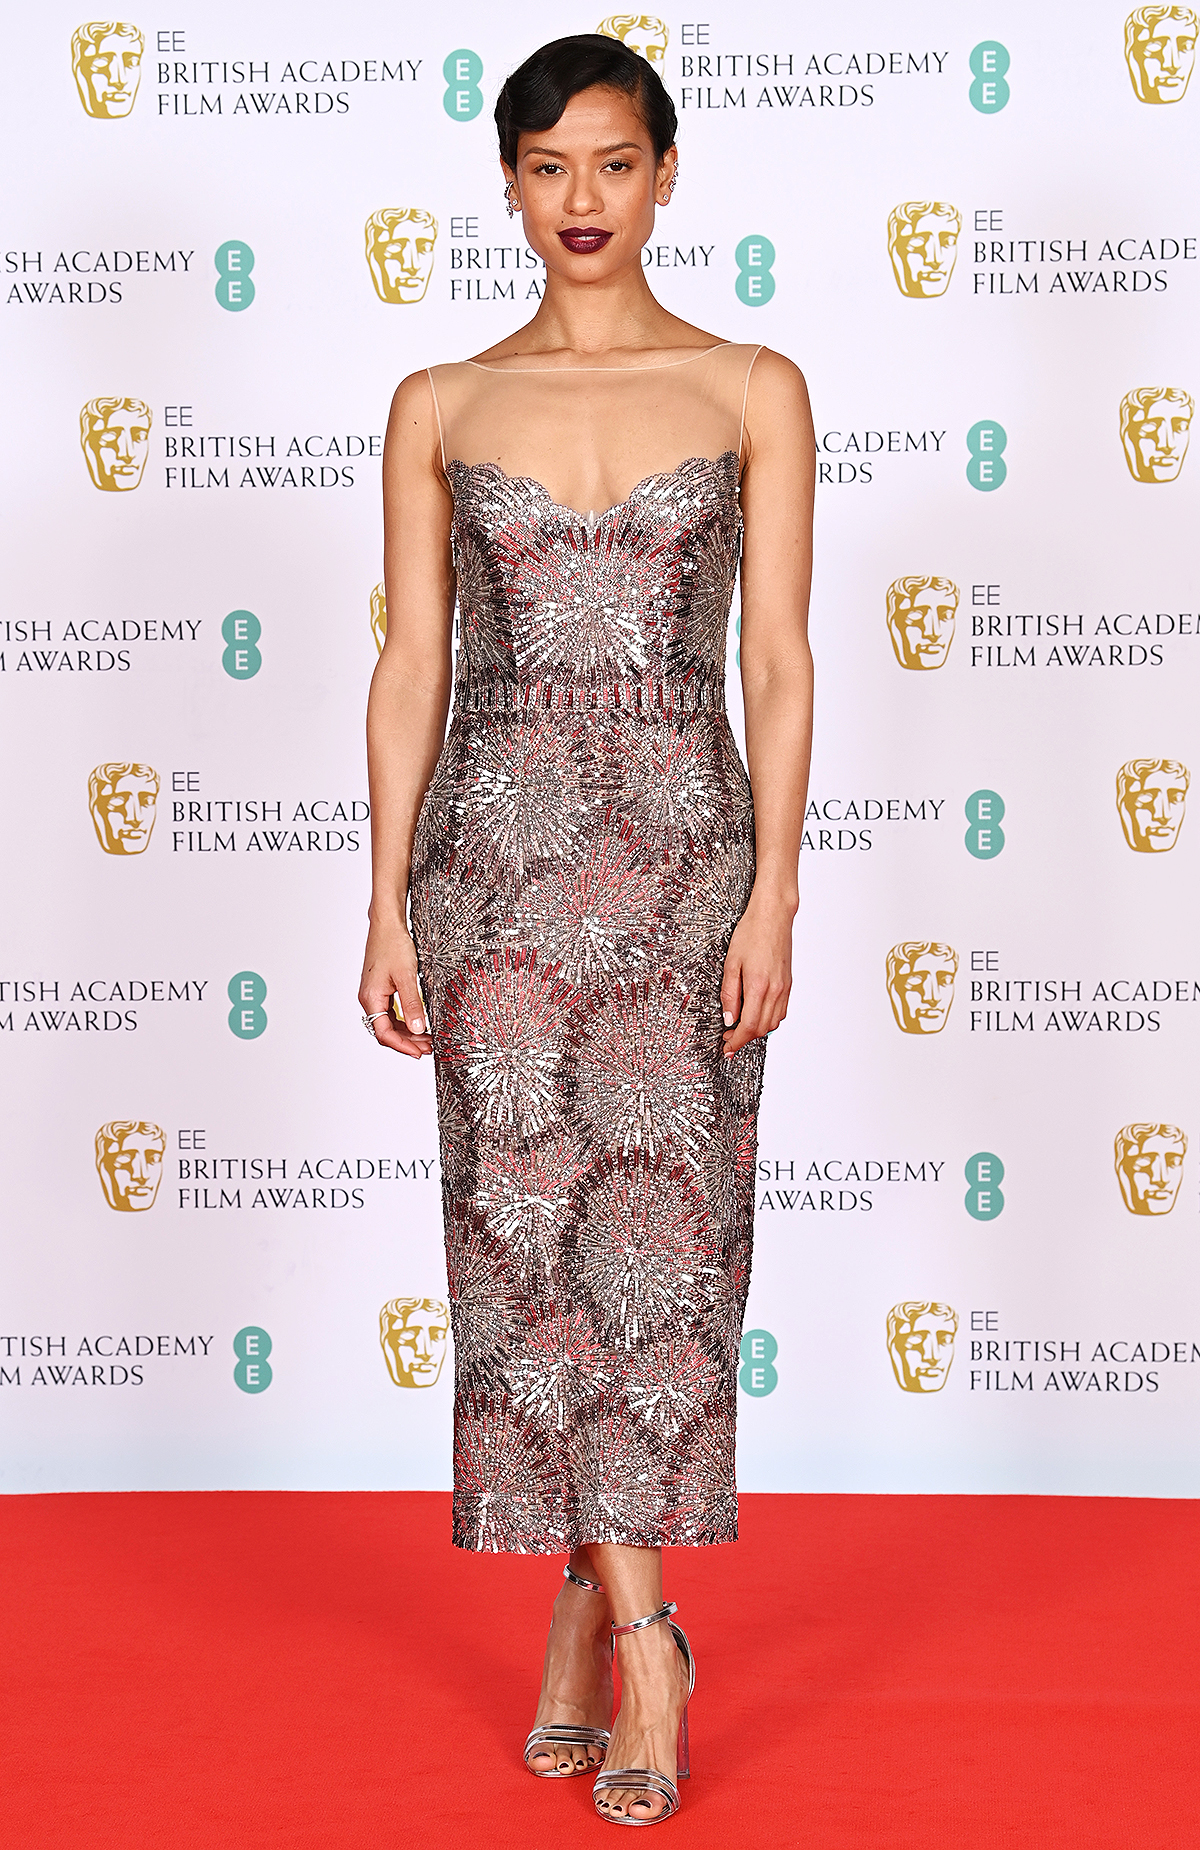 Gugu Mbatha-Raw 74th British Academy Film Awards, Arrivals, Royal Albert Hall, London, UK - 11 Apr 2021 Wearing Louis Vuitton